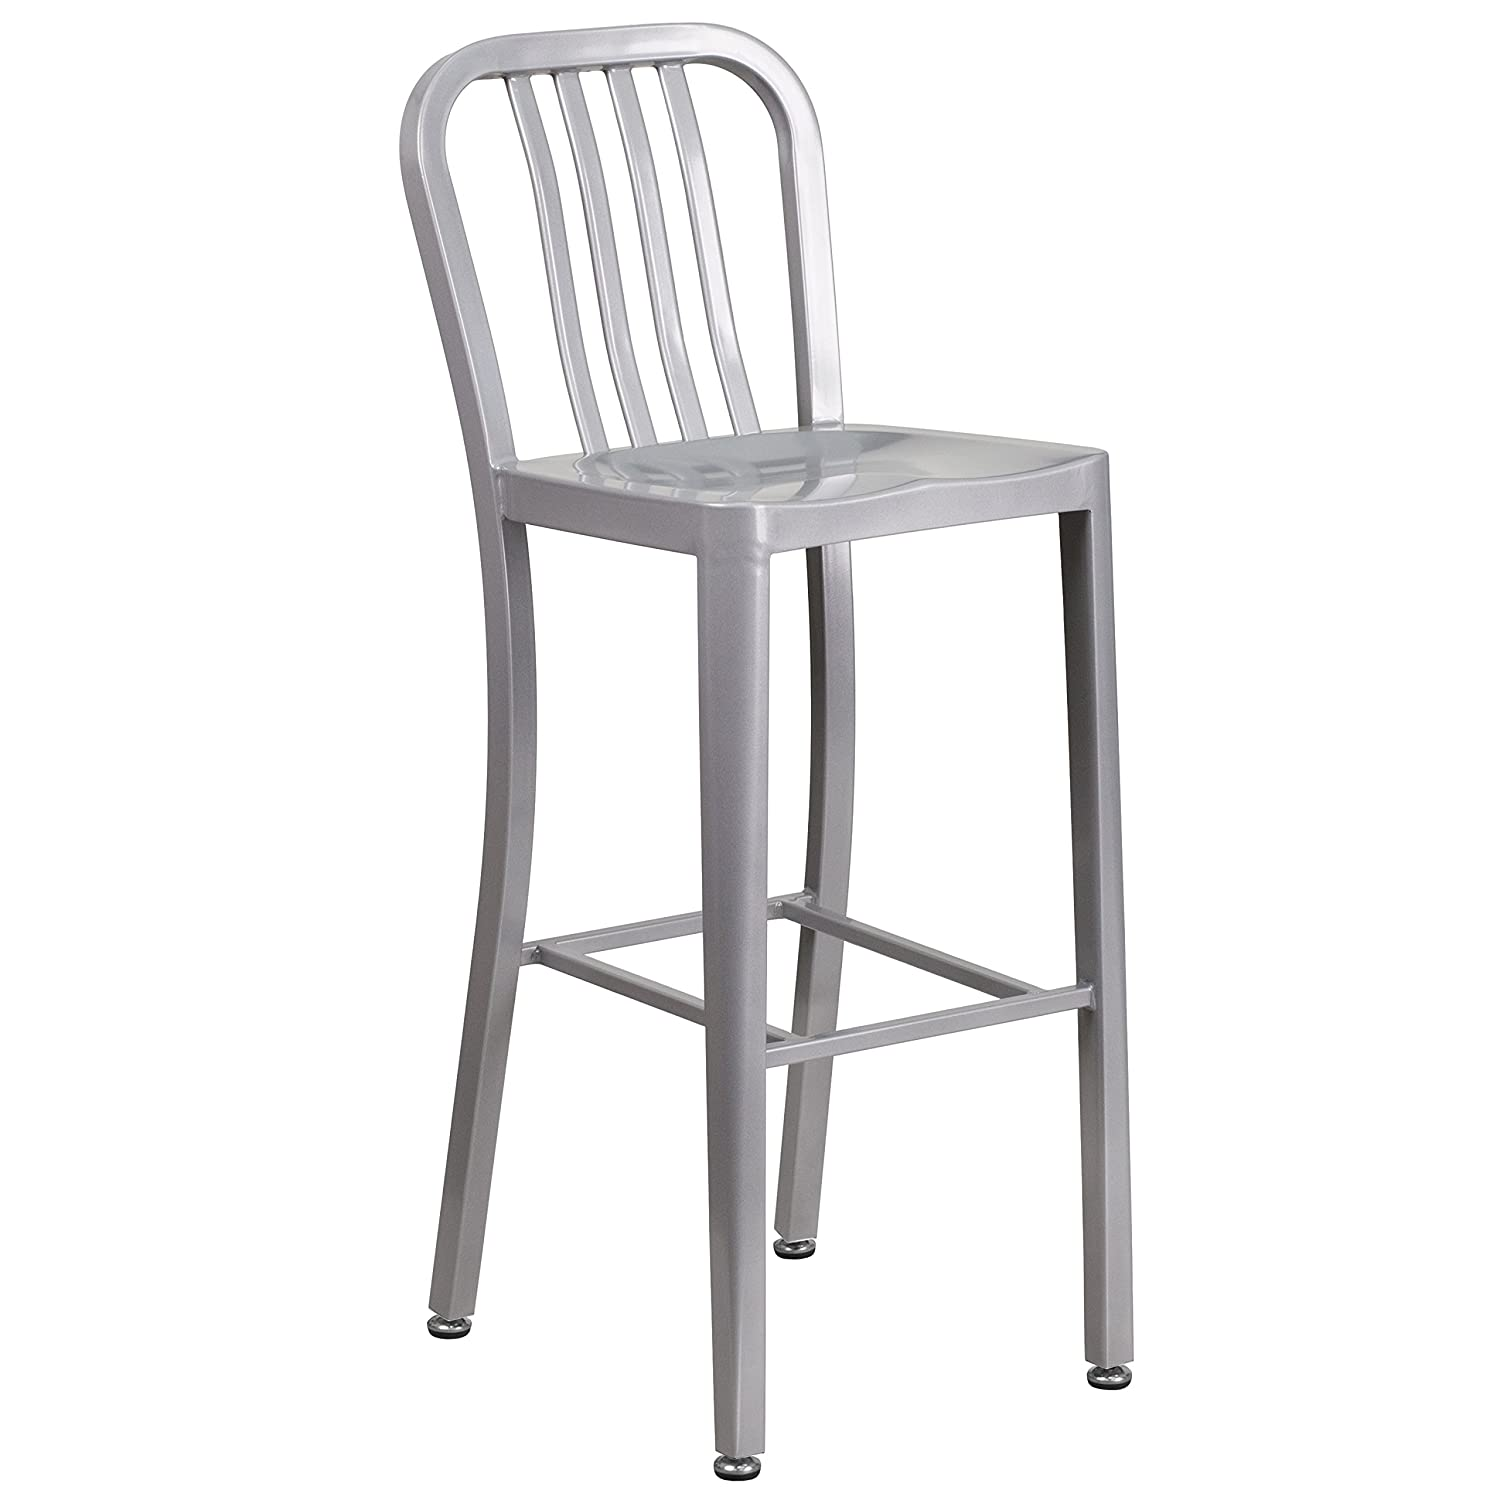 Amazon.com Flash Furniture 30u0027u0027 High Silver Metal Indoor-Outdoor Barstool with Vertical Slat Back Kitchen u0026 Dining  sc 1 st  Amazon.com & Amazon.com: Flash Furniture 30u0027u0027 High Silver Metal Indoor-Outdoor ... islam-shia.org